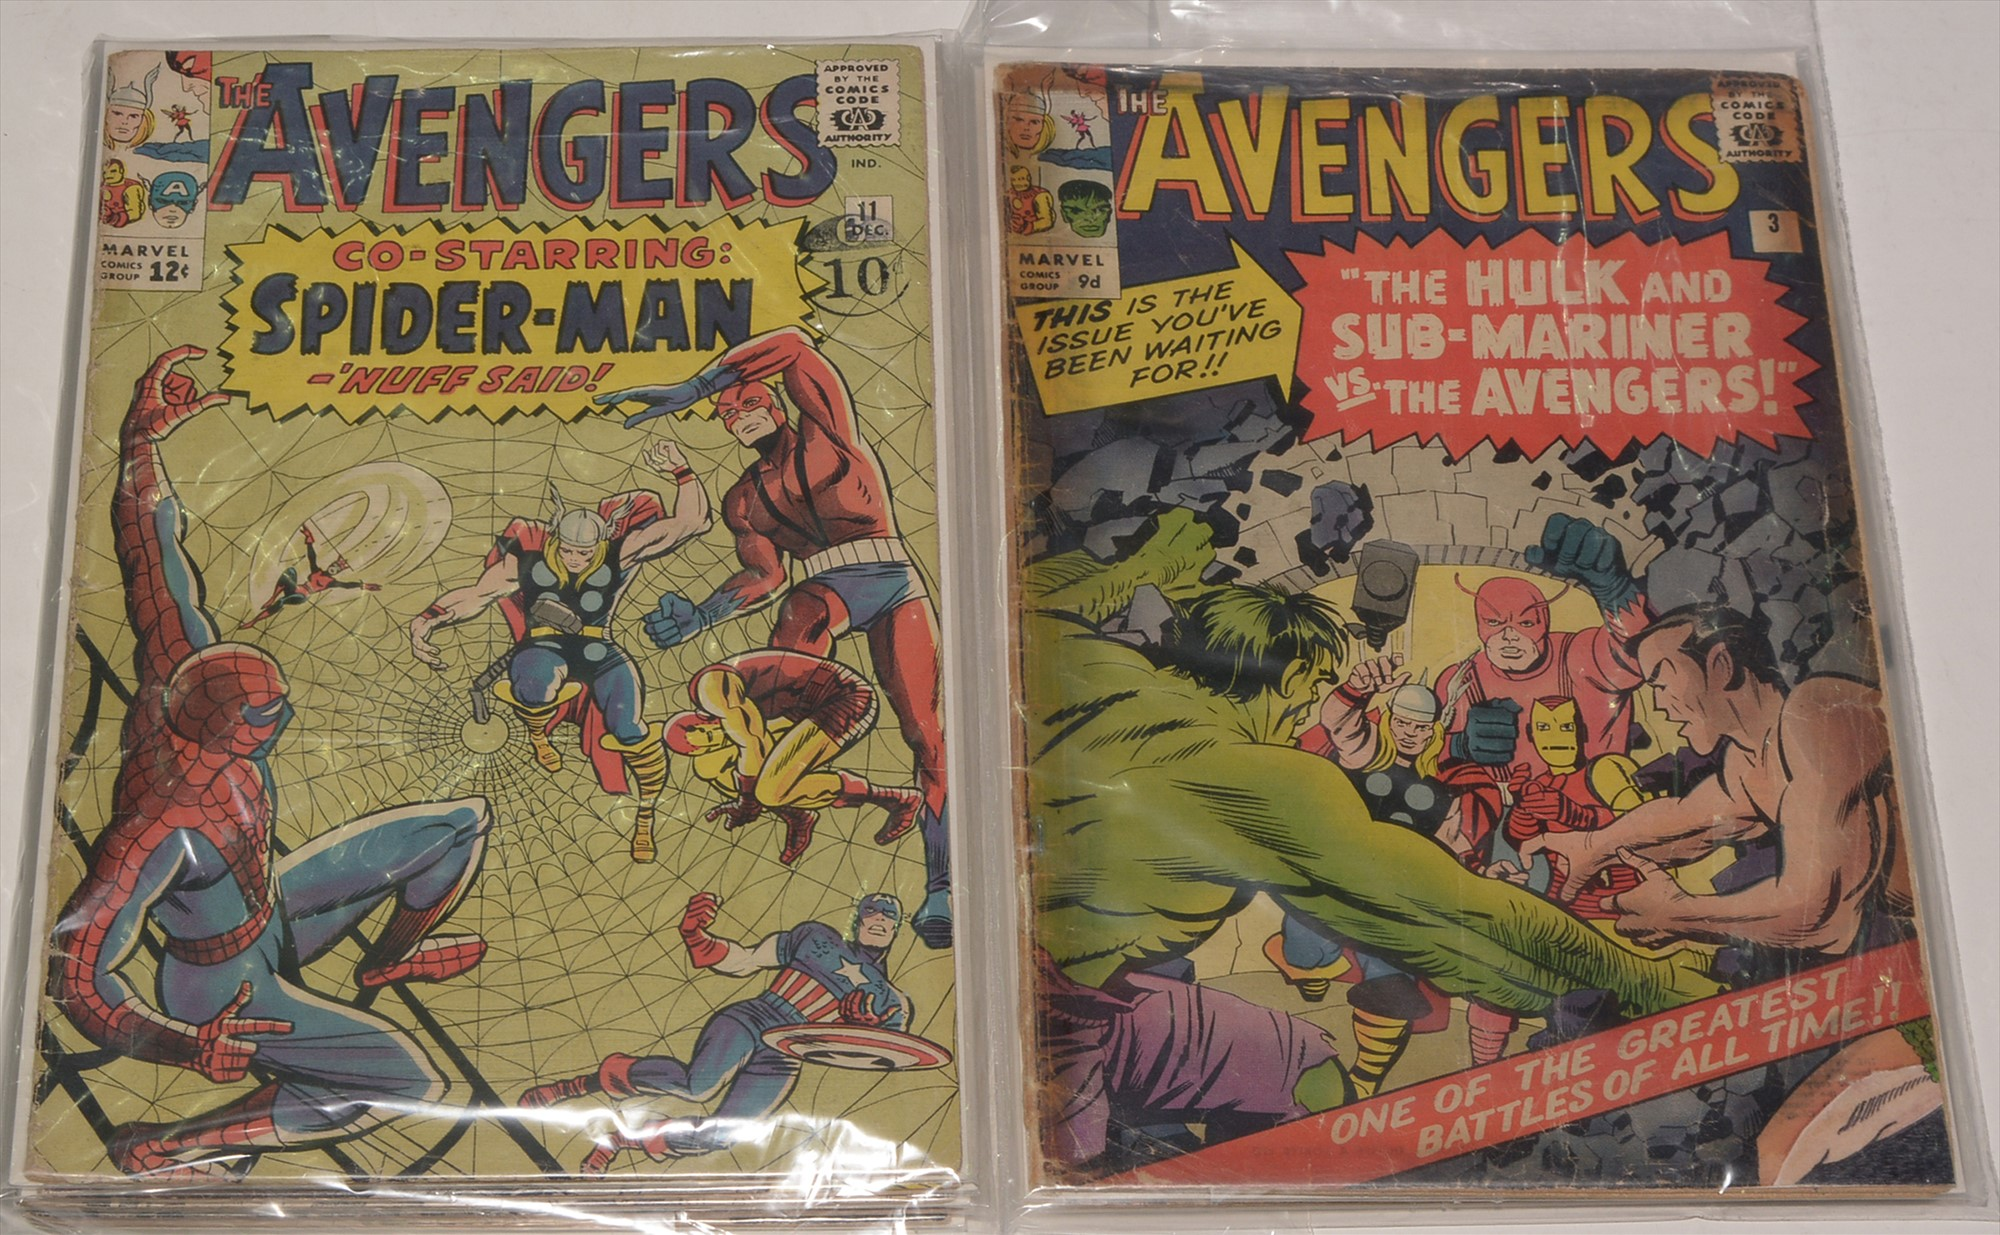 The Avengers No's. 3, 5, 11, 13, 14, 17 and 18